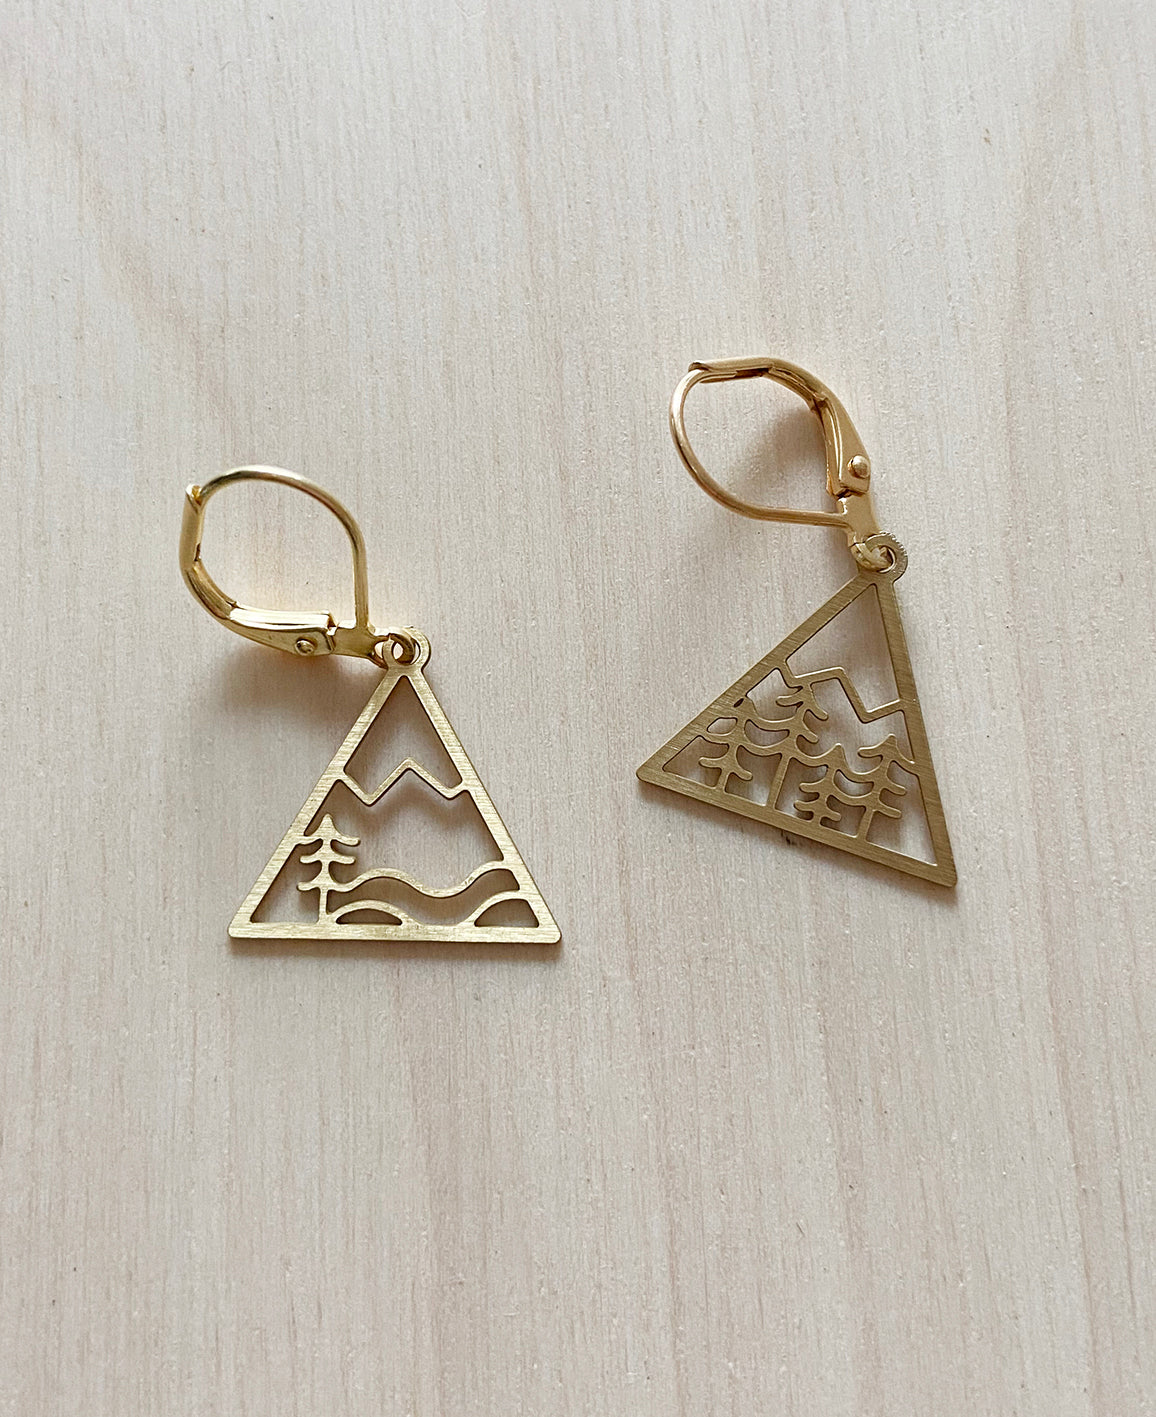 Alps earrings